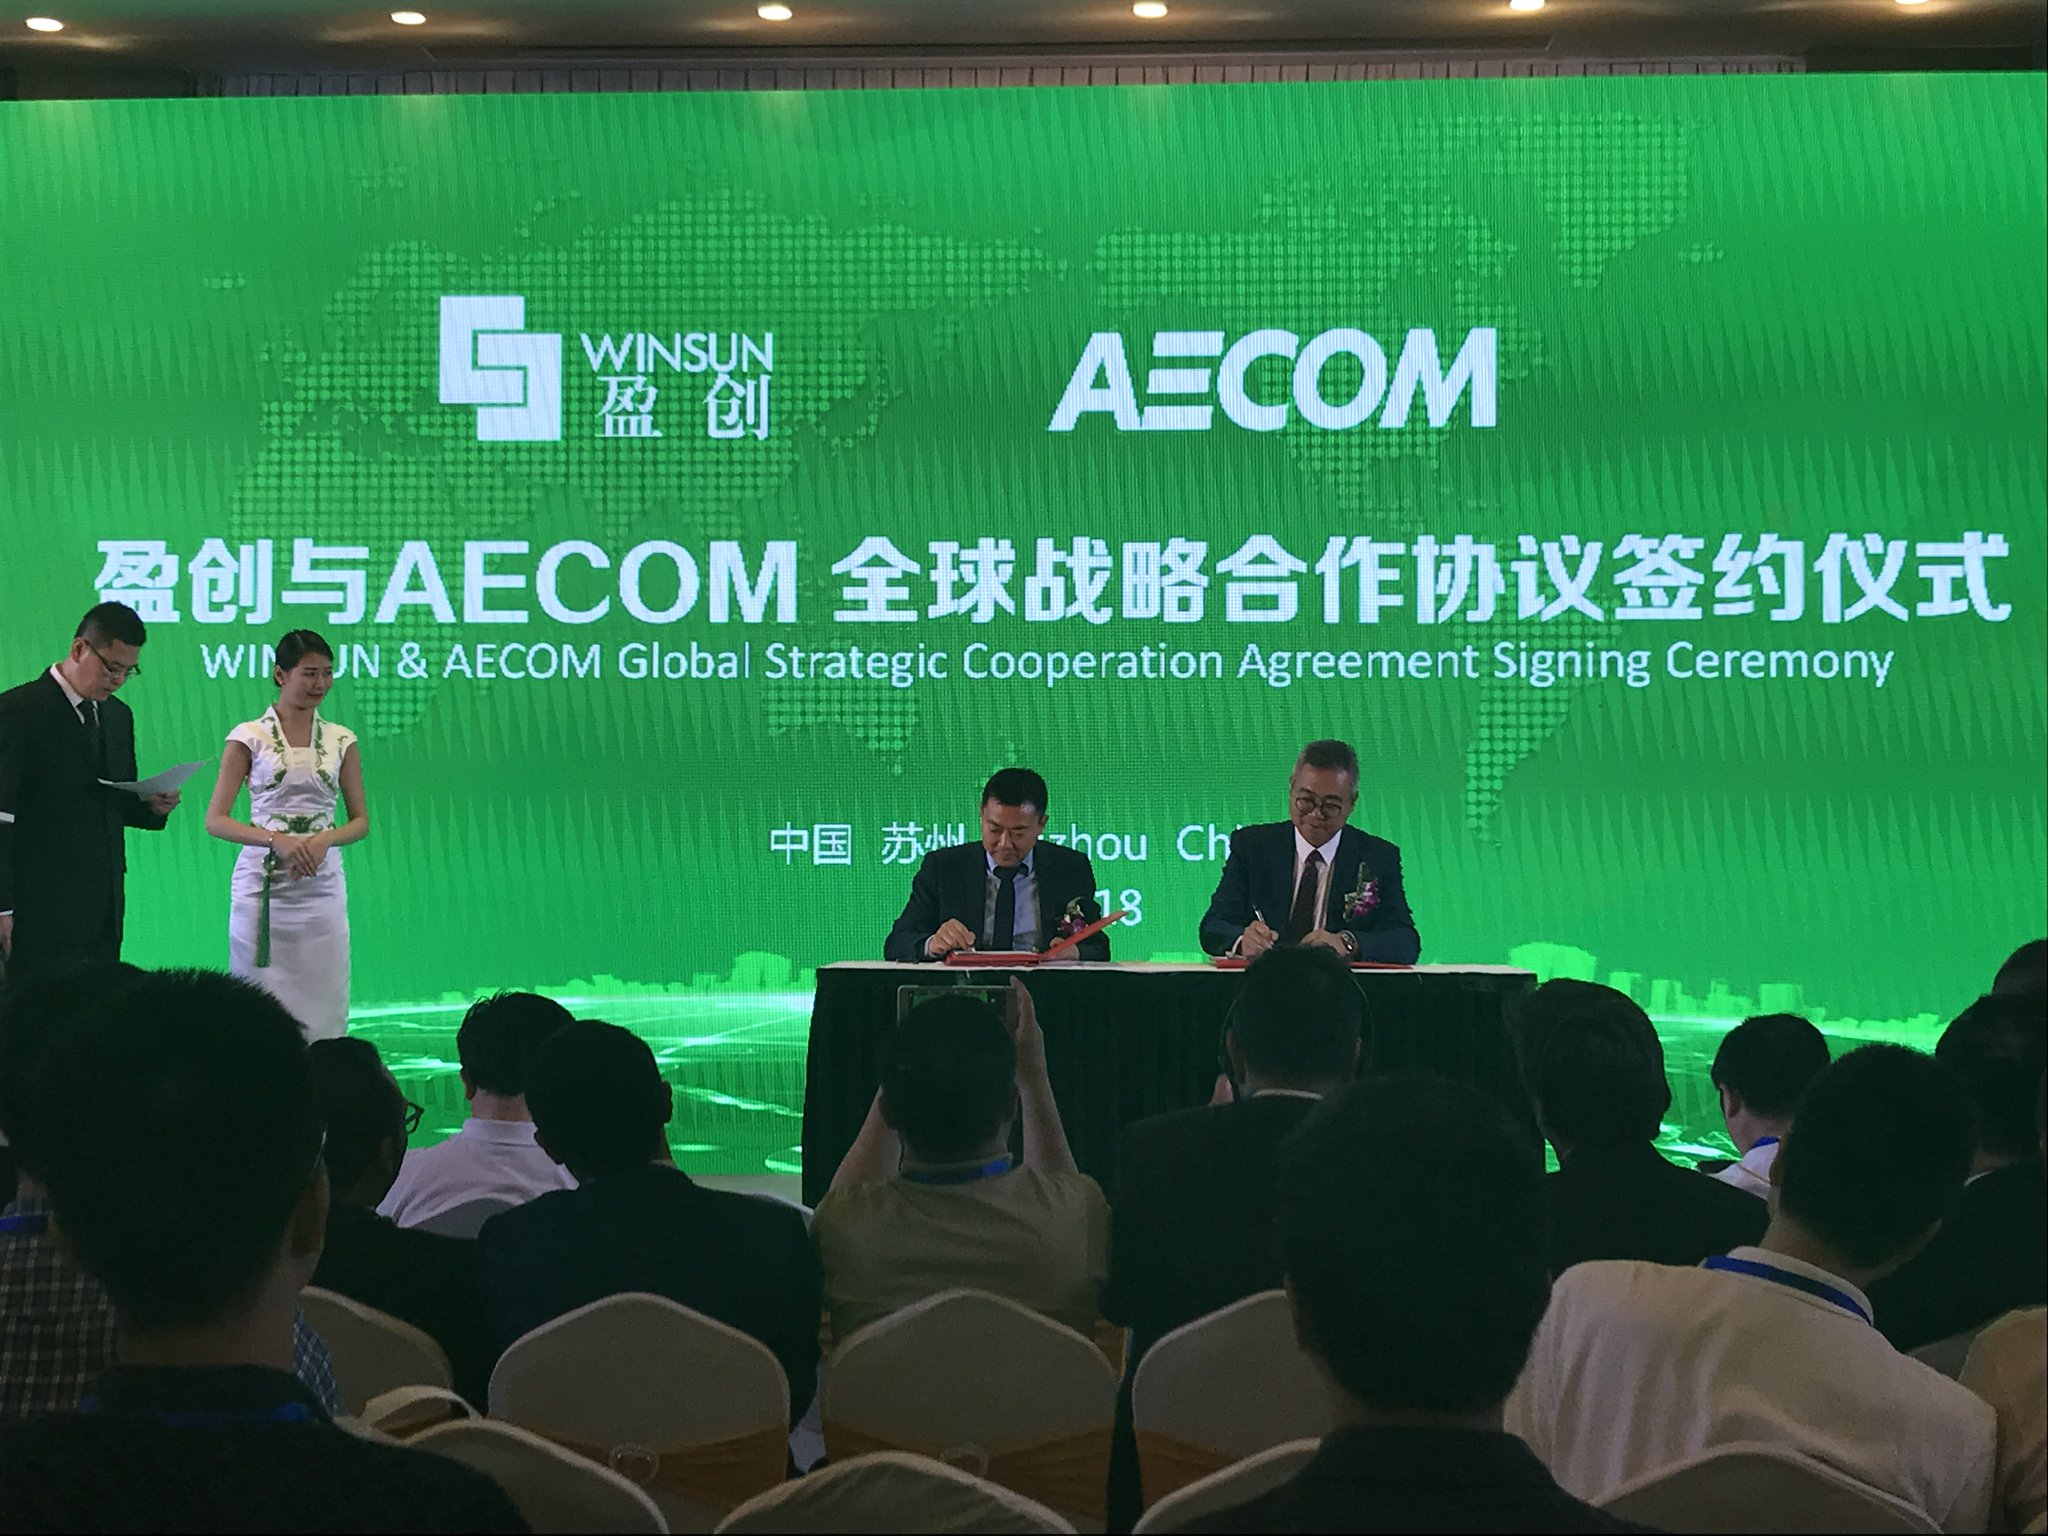 The Memorandum of Understanding (MOU) signed at a ceremony in Suzhou, China. Photo via Aecom.